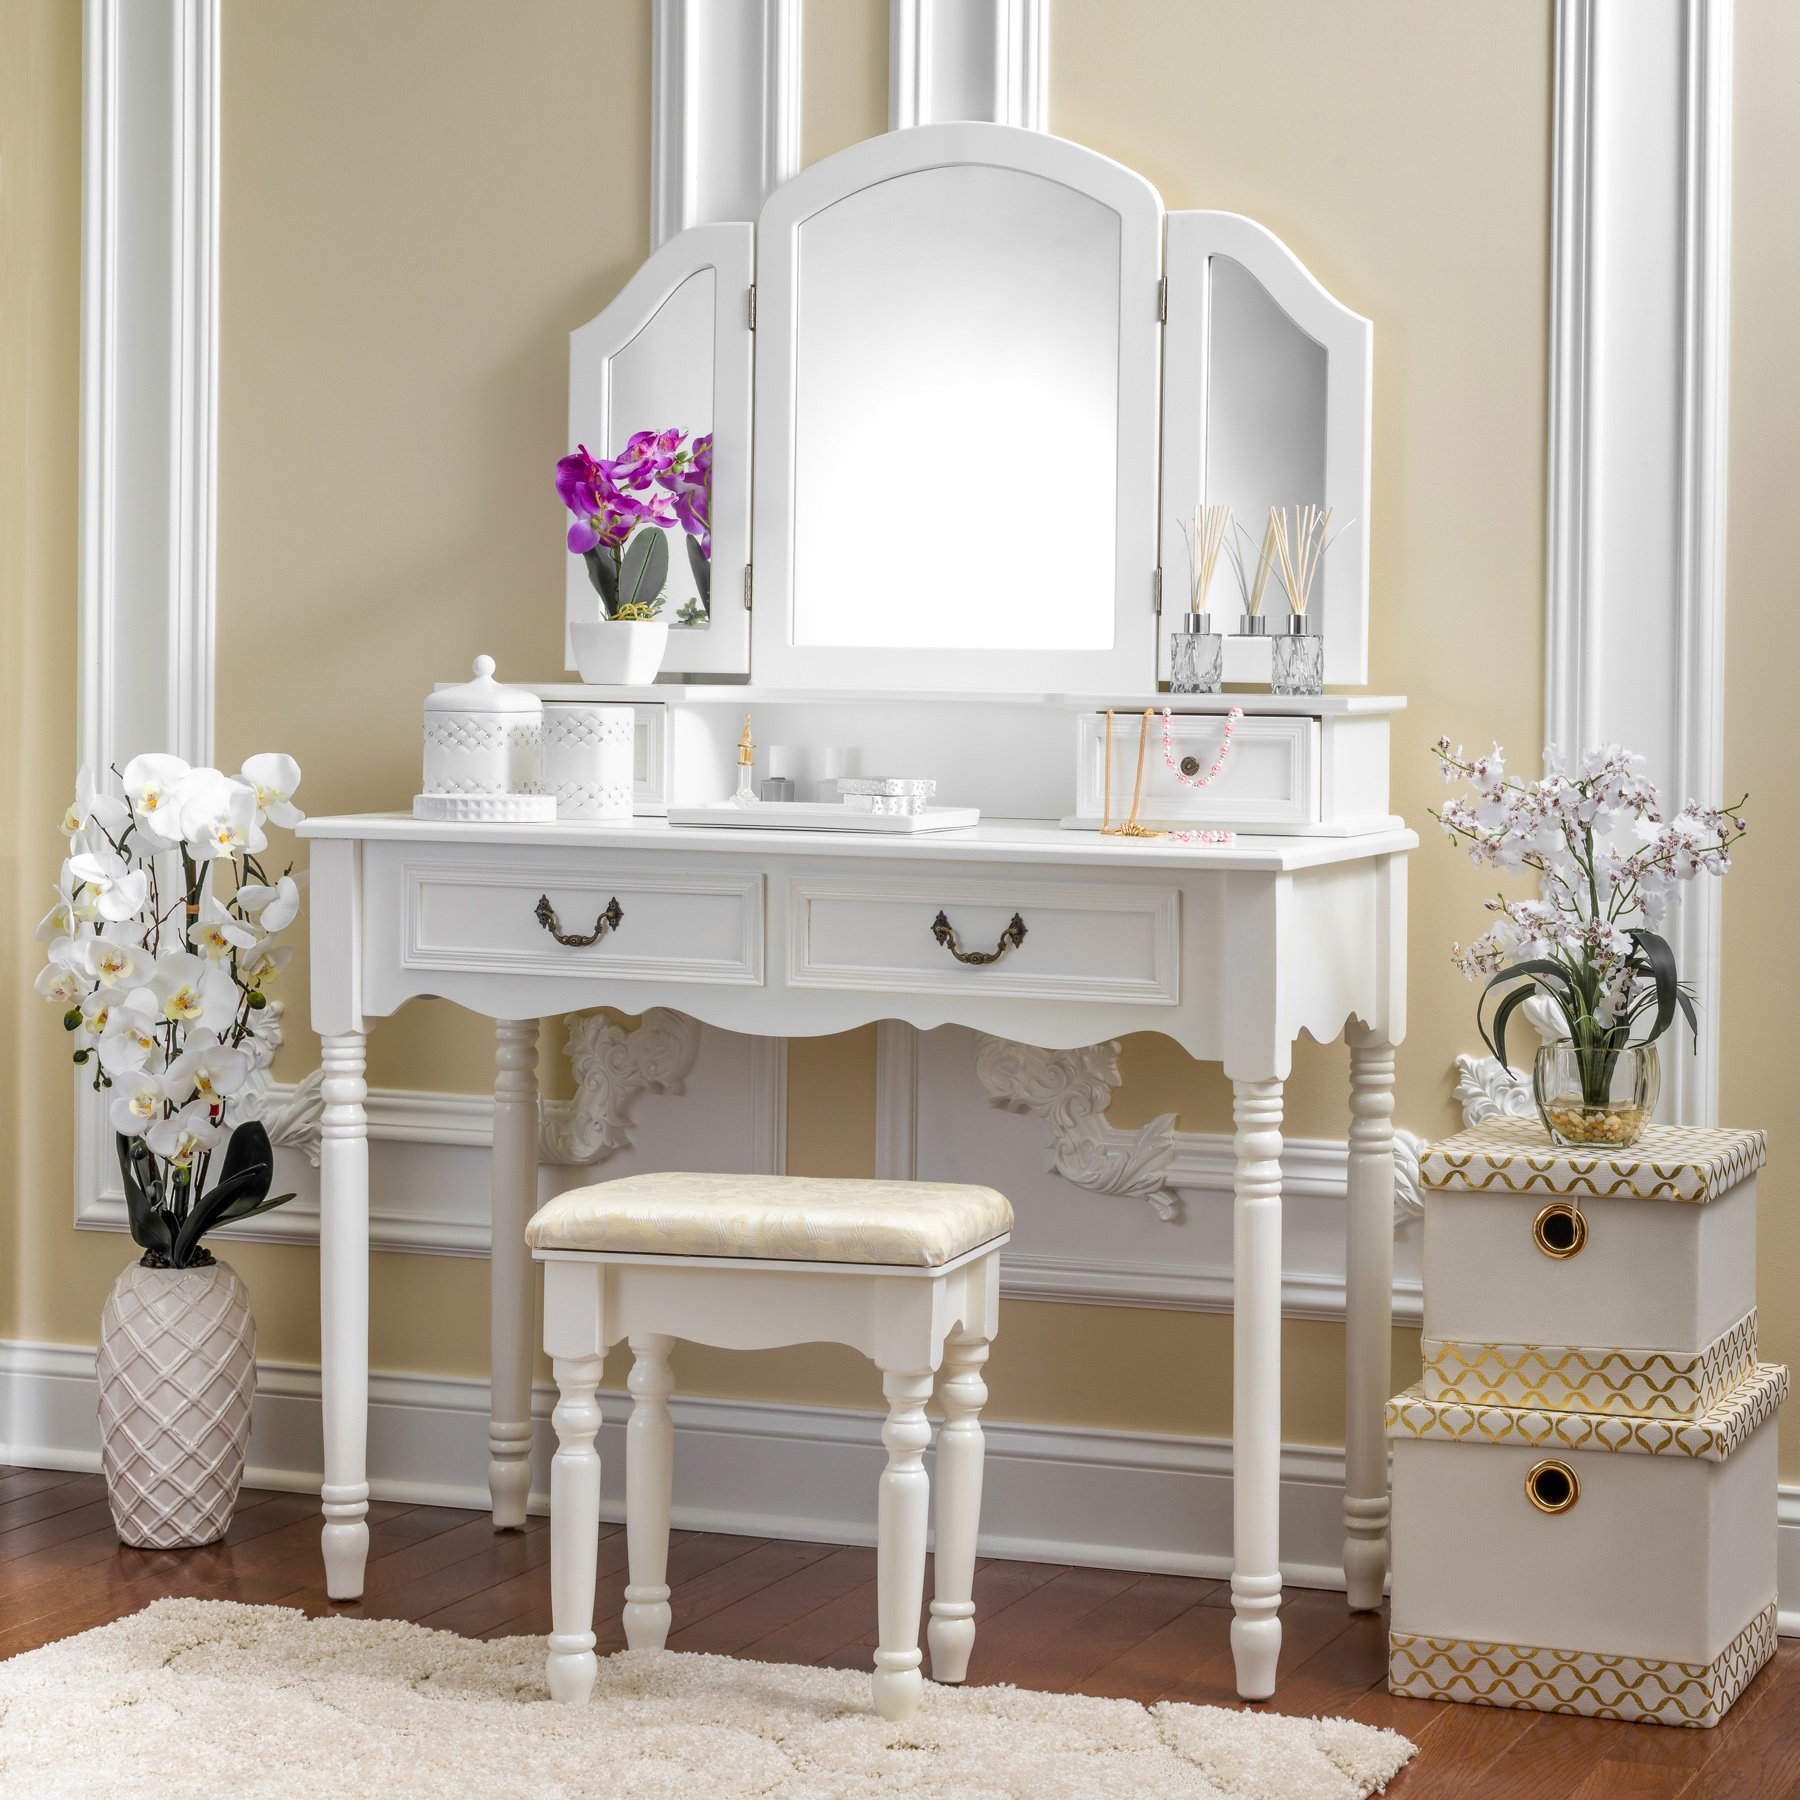 Fineboard FB-VT06-WV Elegant Vanity Set Makeup Dressing Table with 3 Mirrors and Stool, 4 Drawers, White